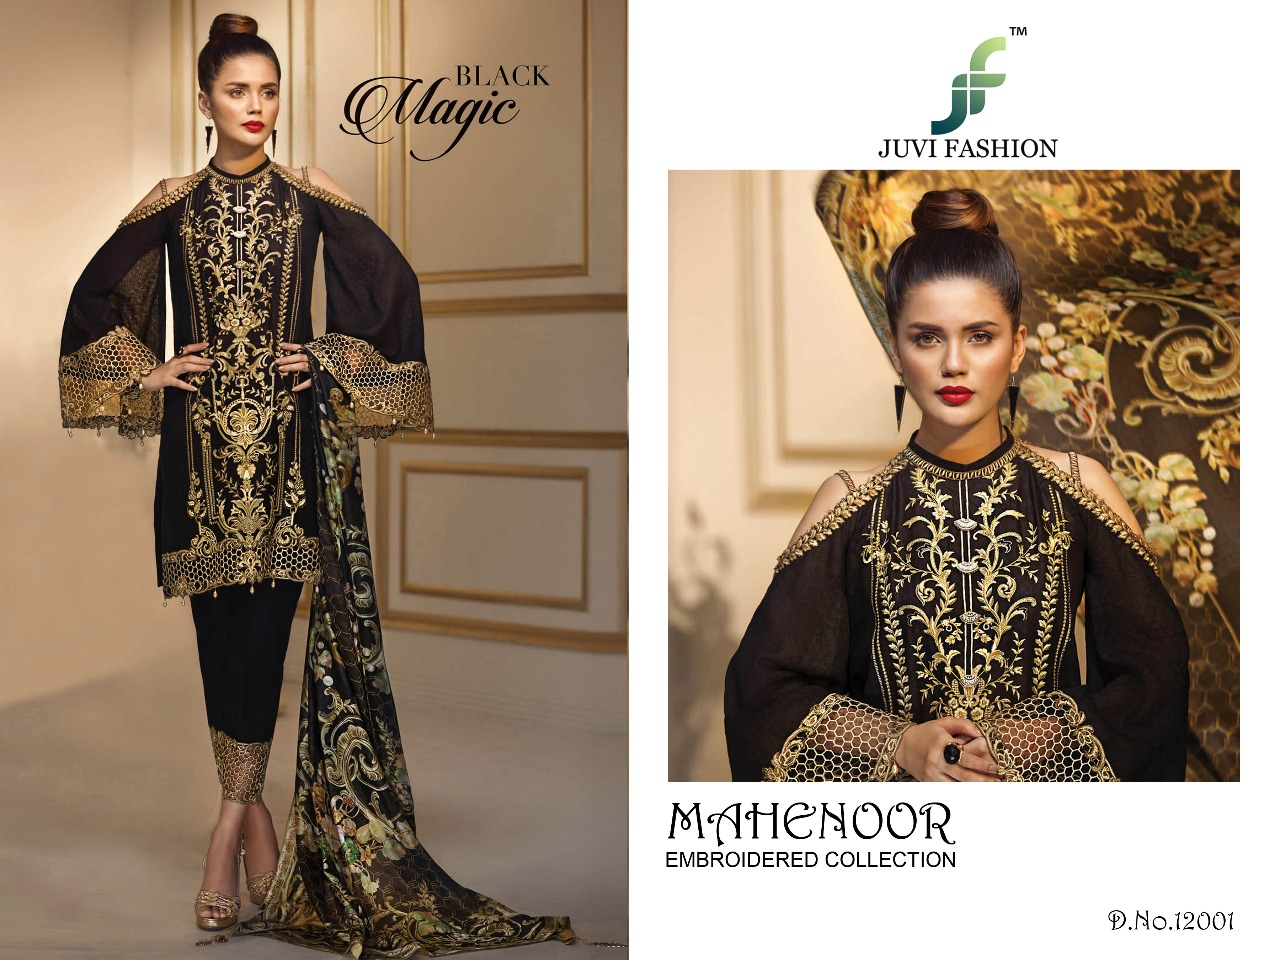 Juvi Fashion Mahenoor Embroidered Collection 12001